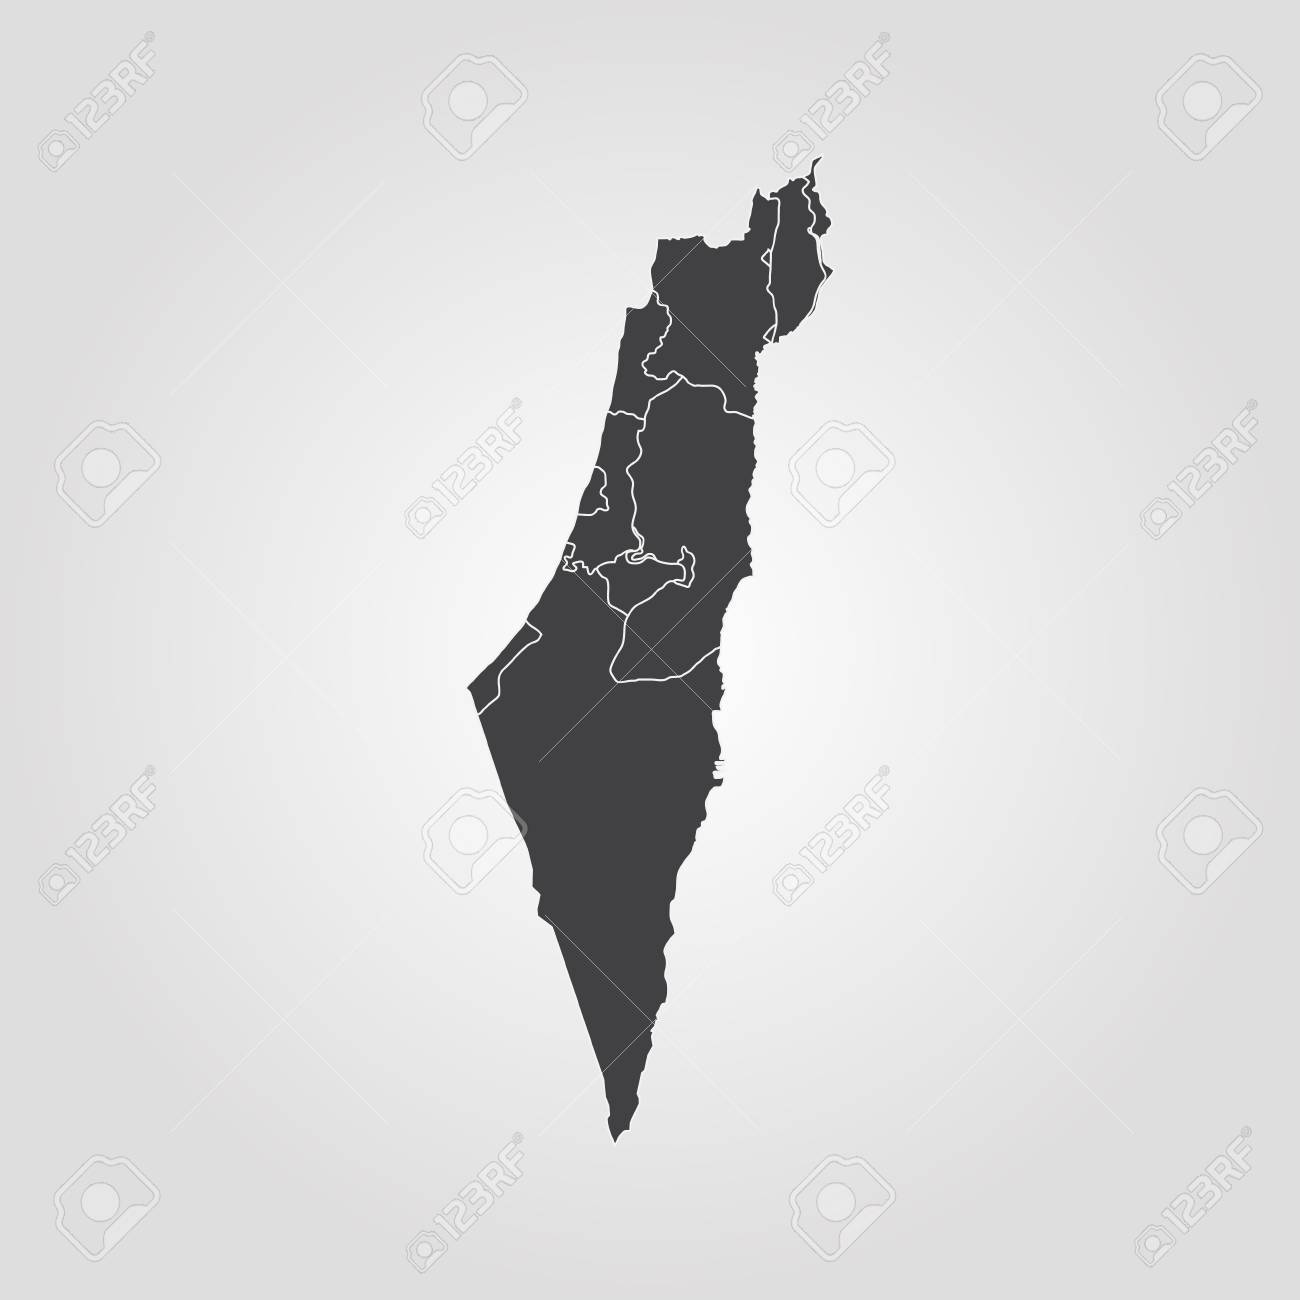 Isreal On World Map.Map Of Israel Vector Illustration World Map Royalty Free Cliparts